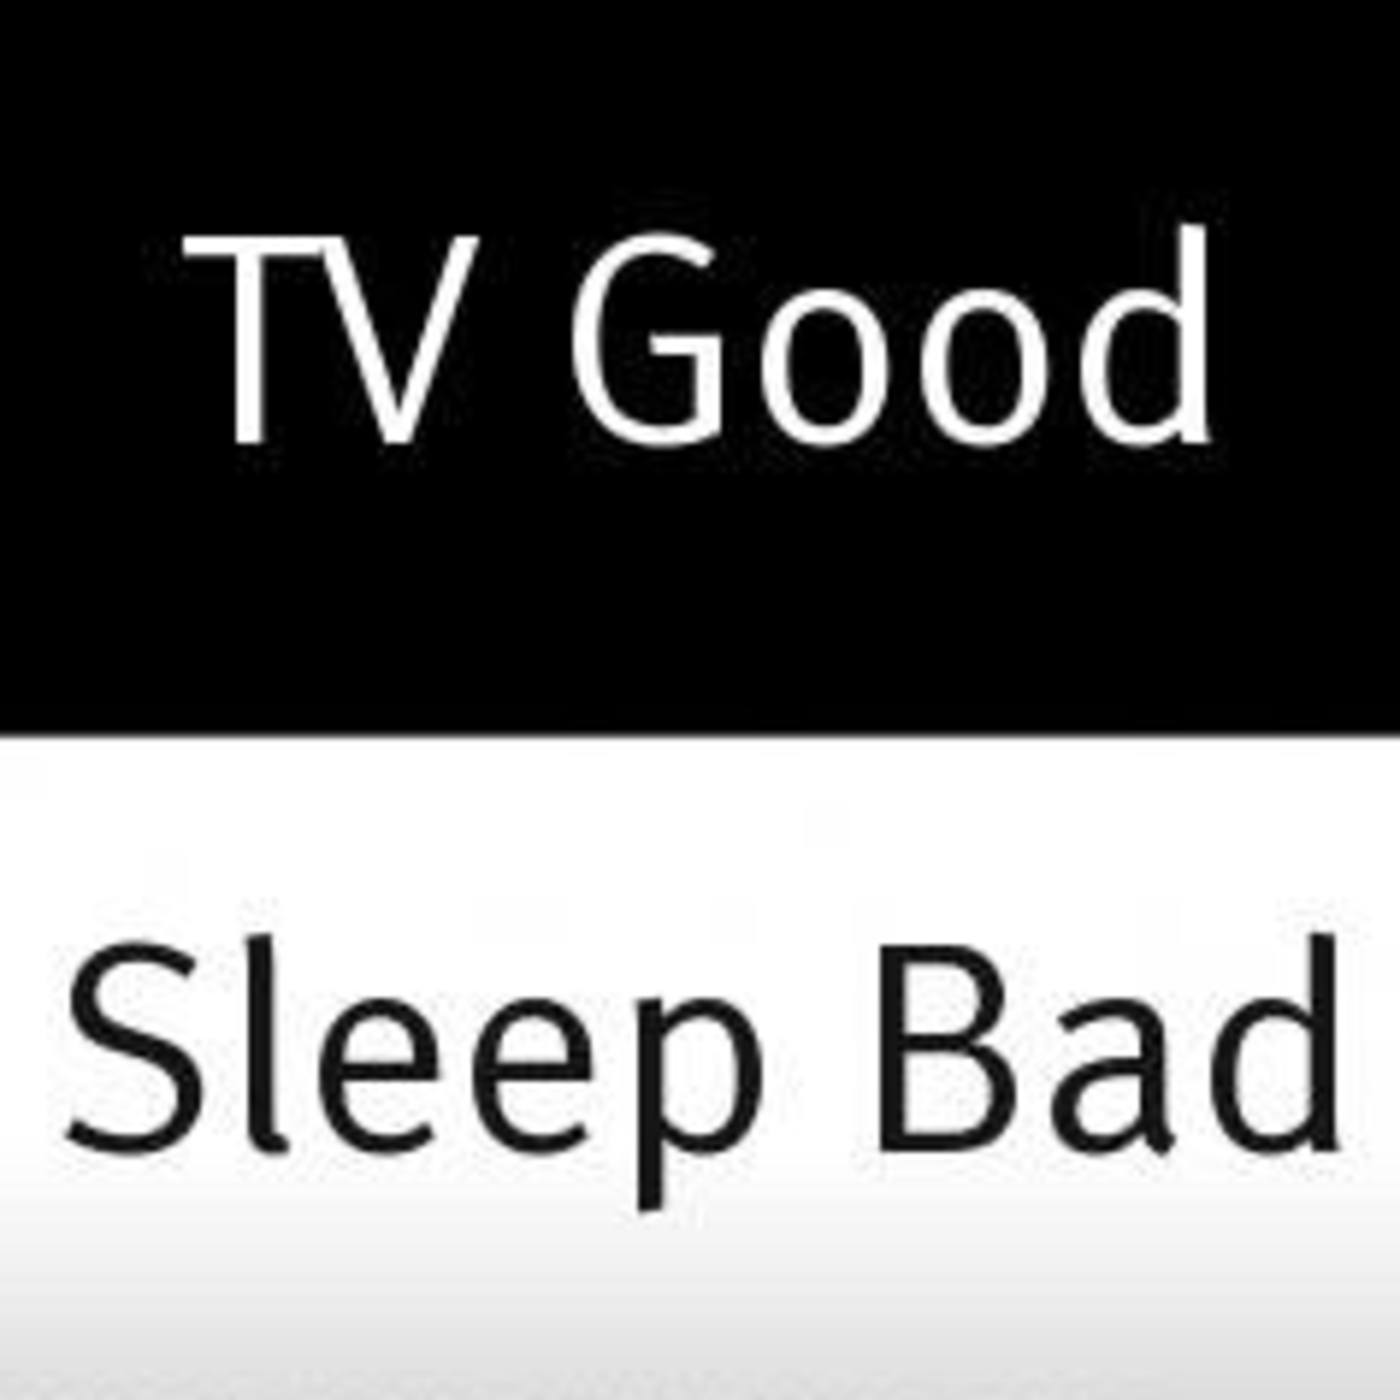 TV Good Sleep Bad